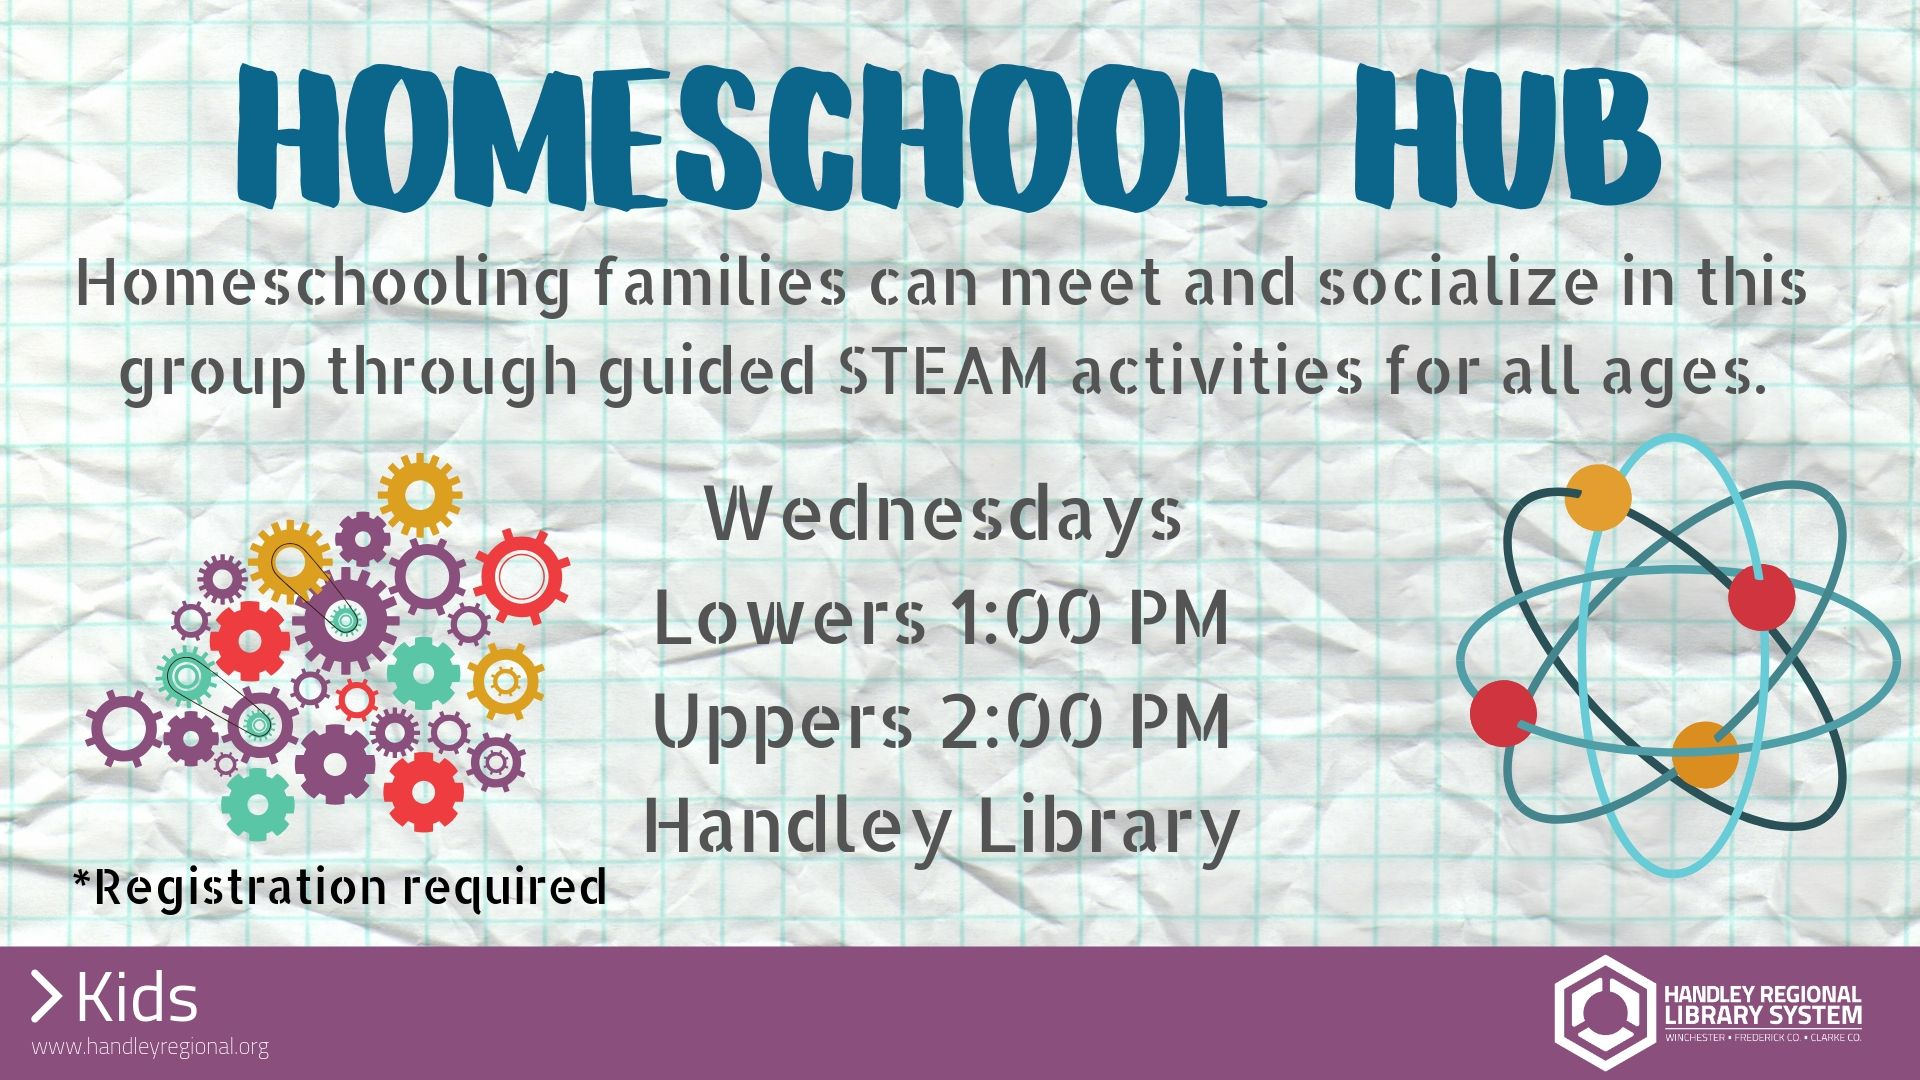 atoms spinning around with homeschool hub event info